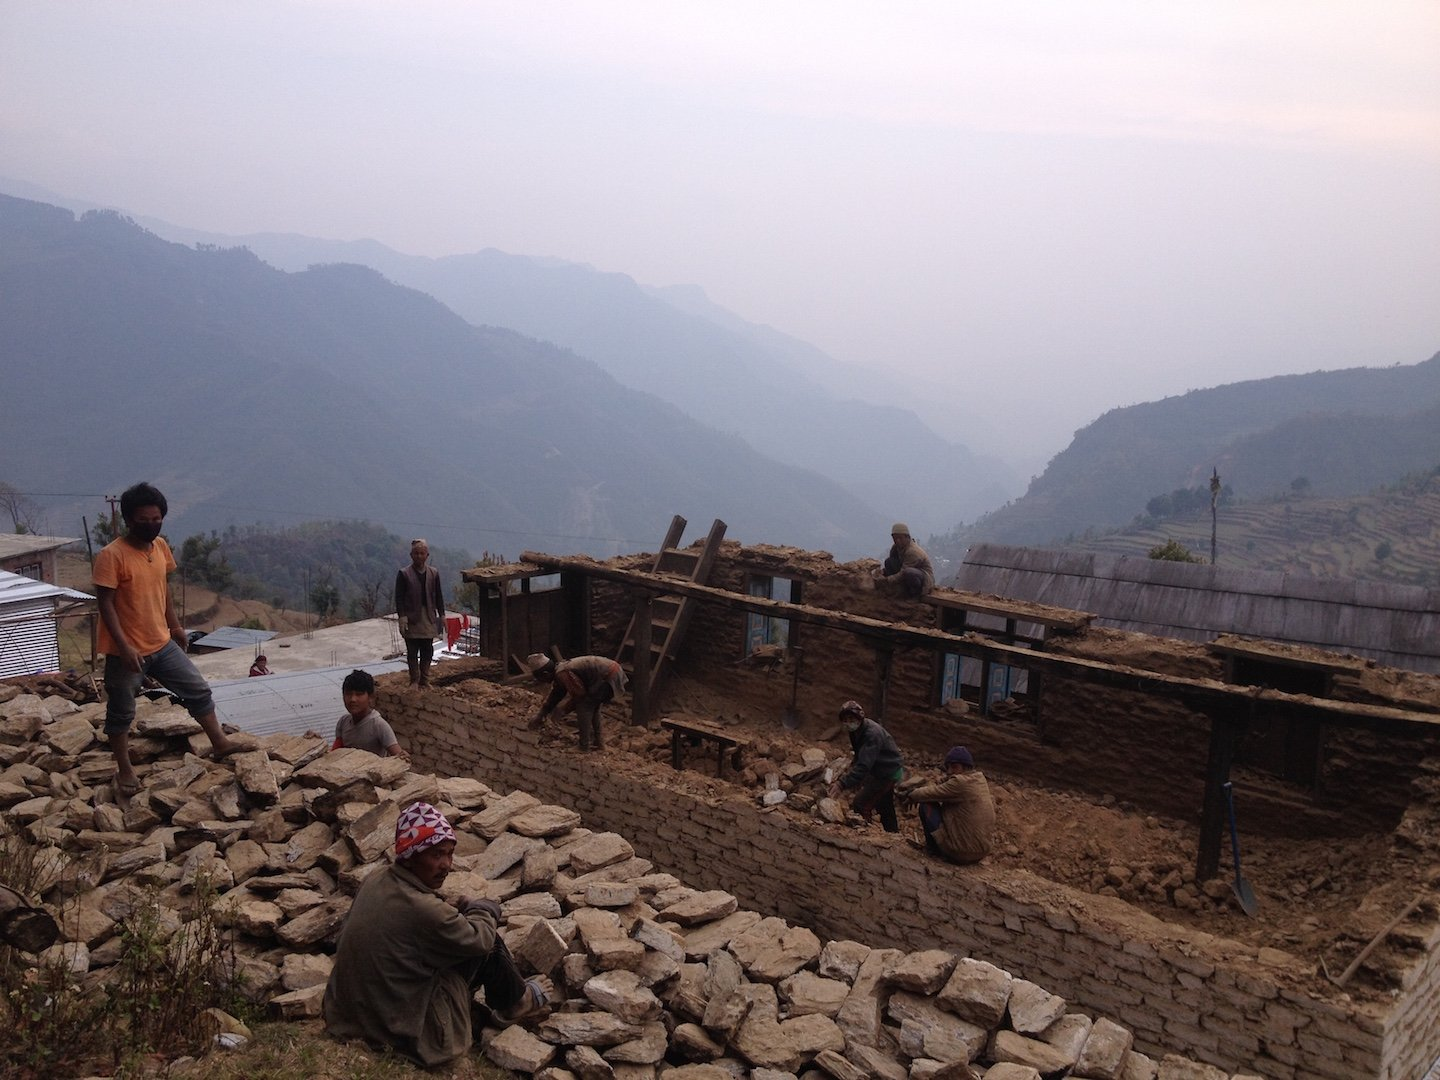 Rebuilding a home in Nepal